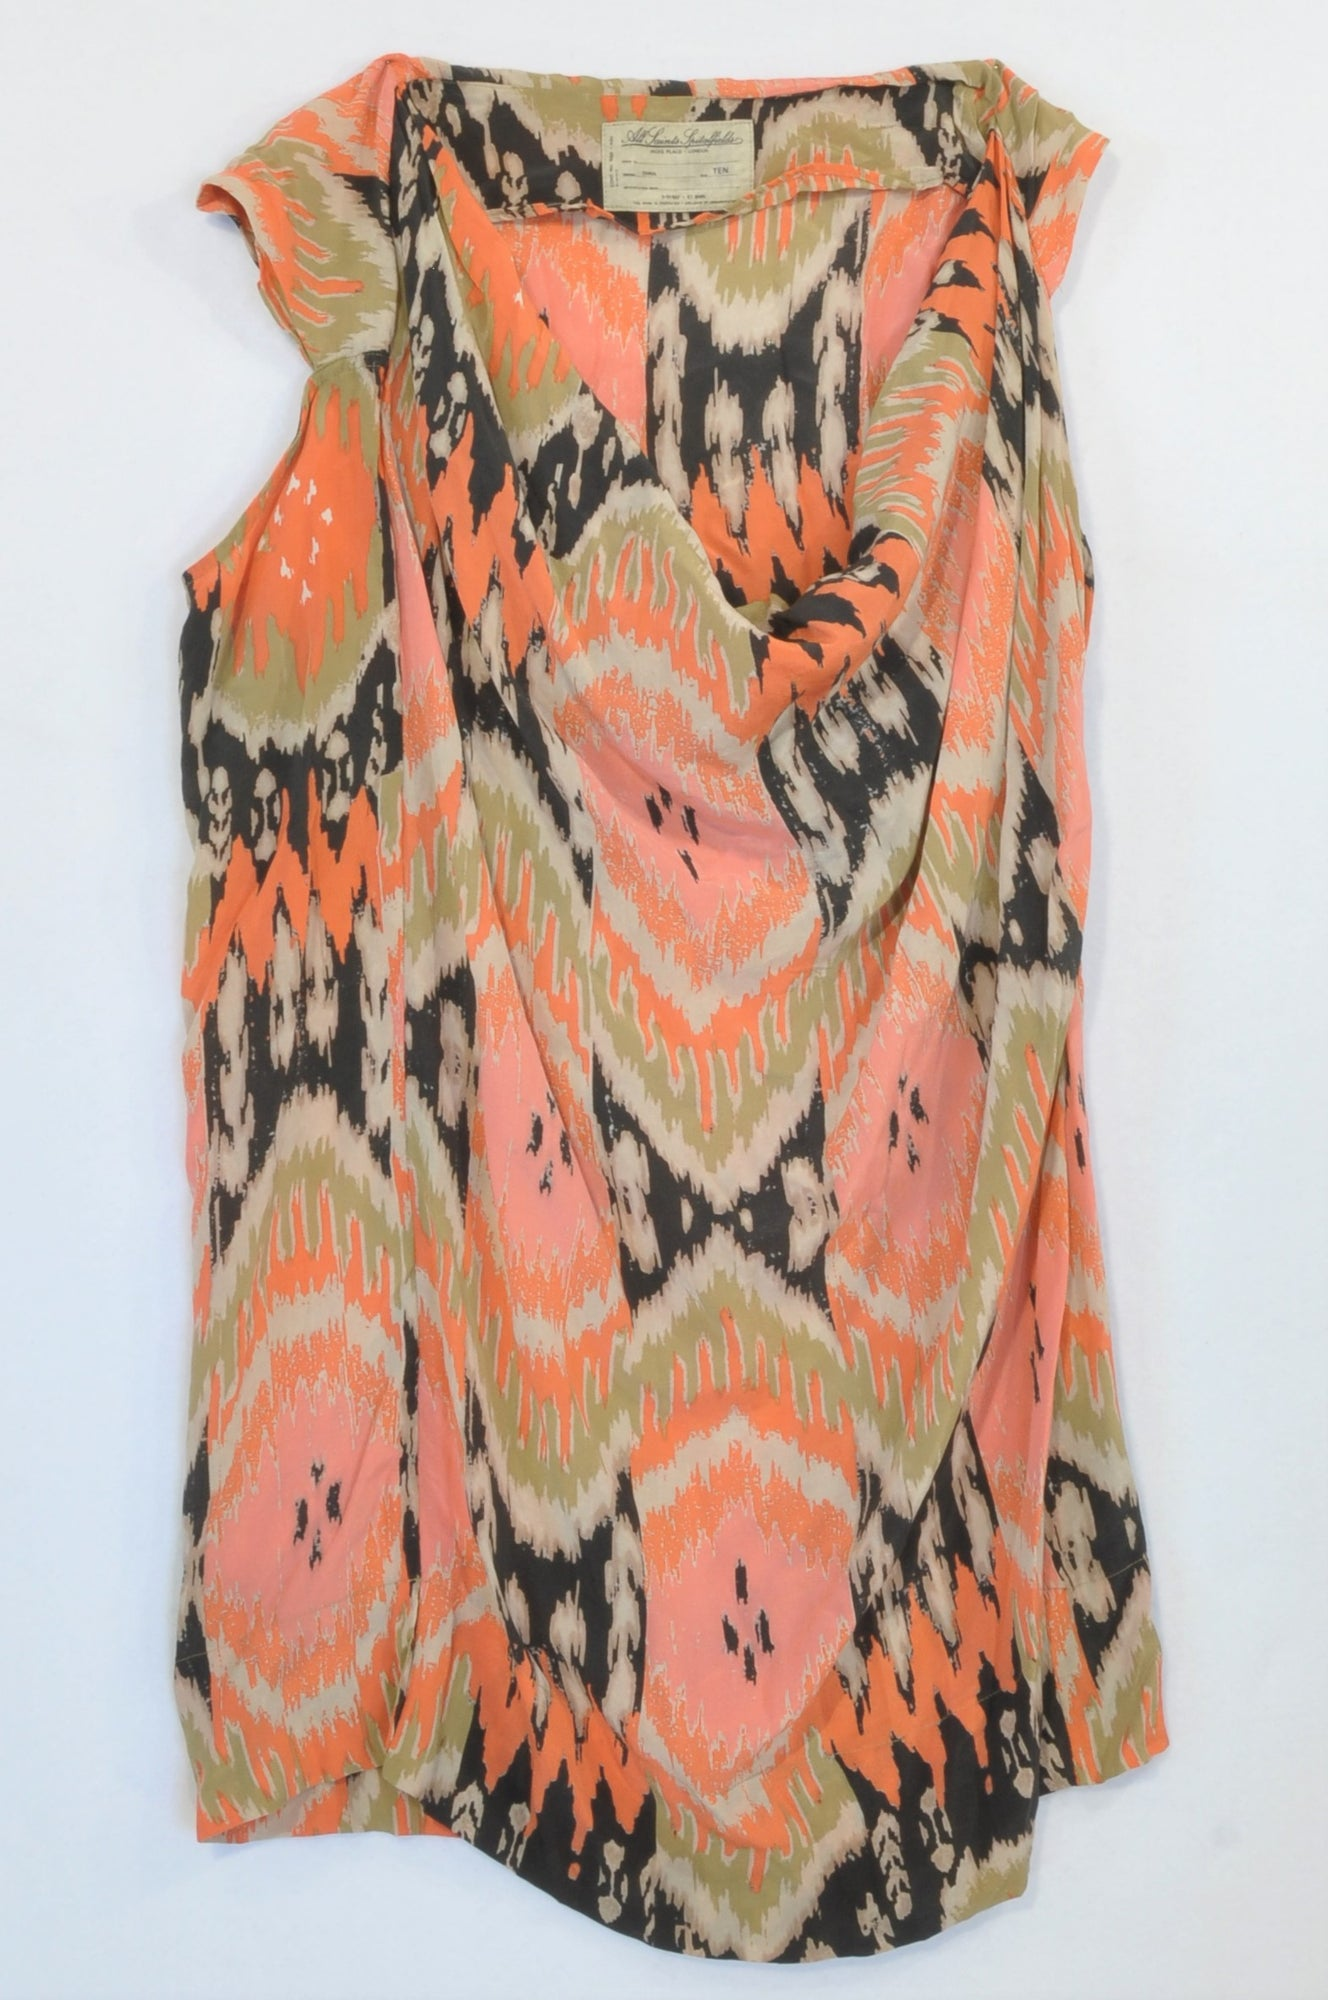 All Saints Orange & Beige Lightweight Tunic Blouse Women Size 10